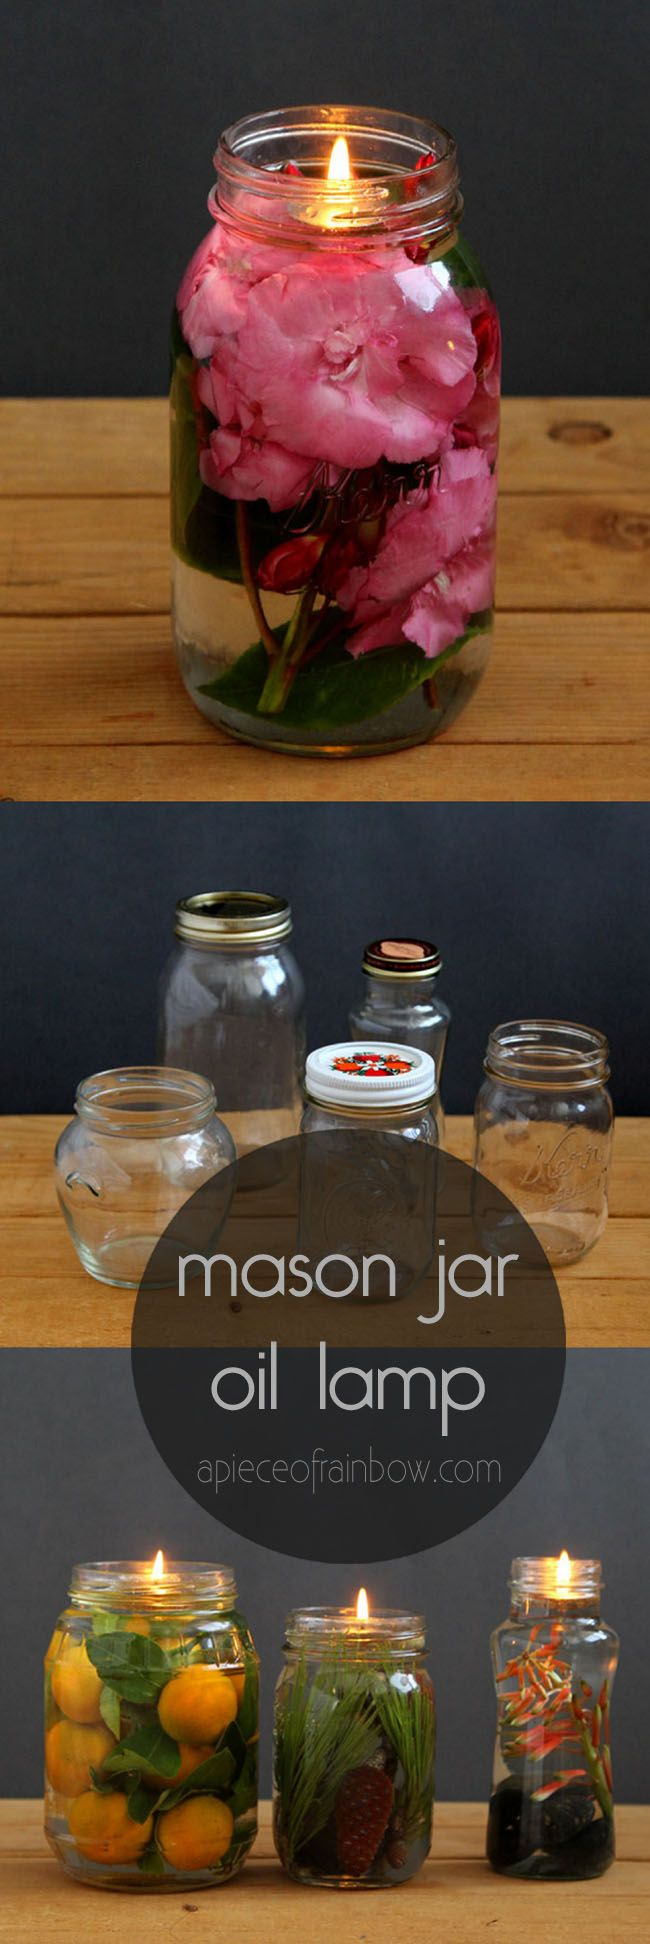 Top ideas about mason jars on pinterest valentines football